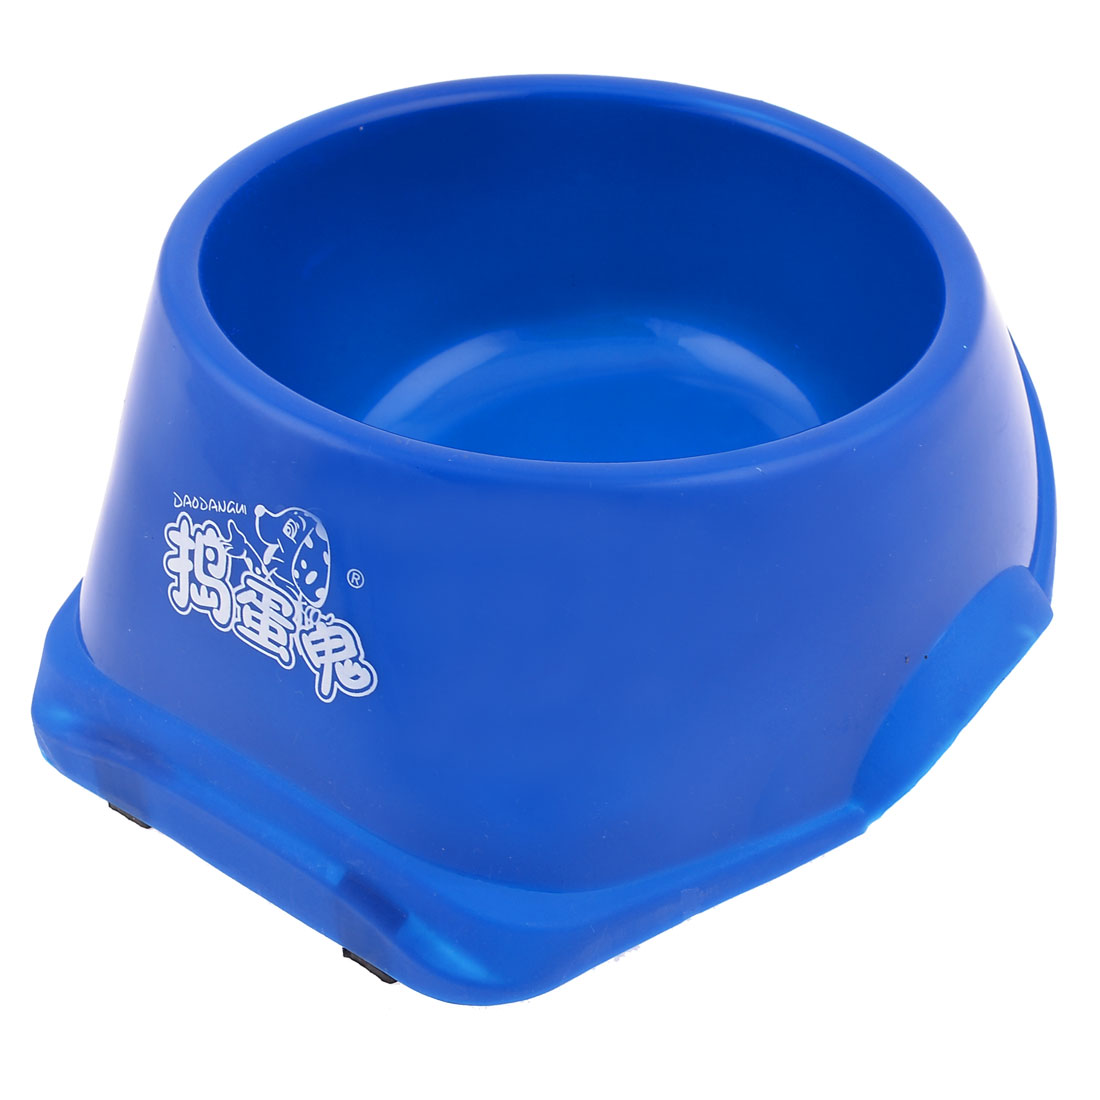 "Blue Plastic Feeed Pet Cat Dog Bowl Food Water Container 8.3"" Diameter"